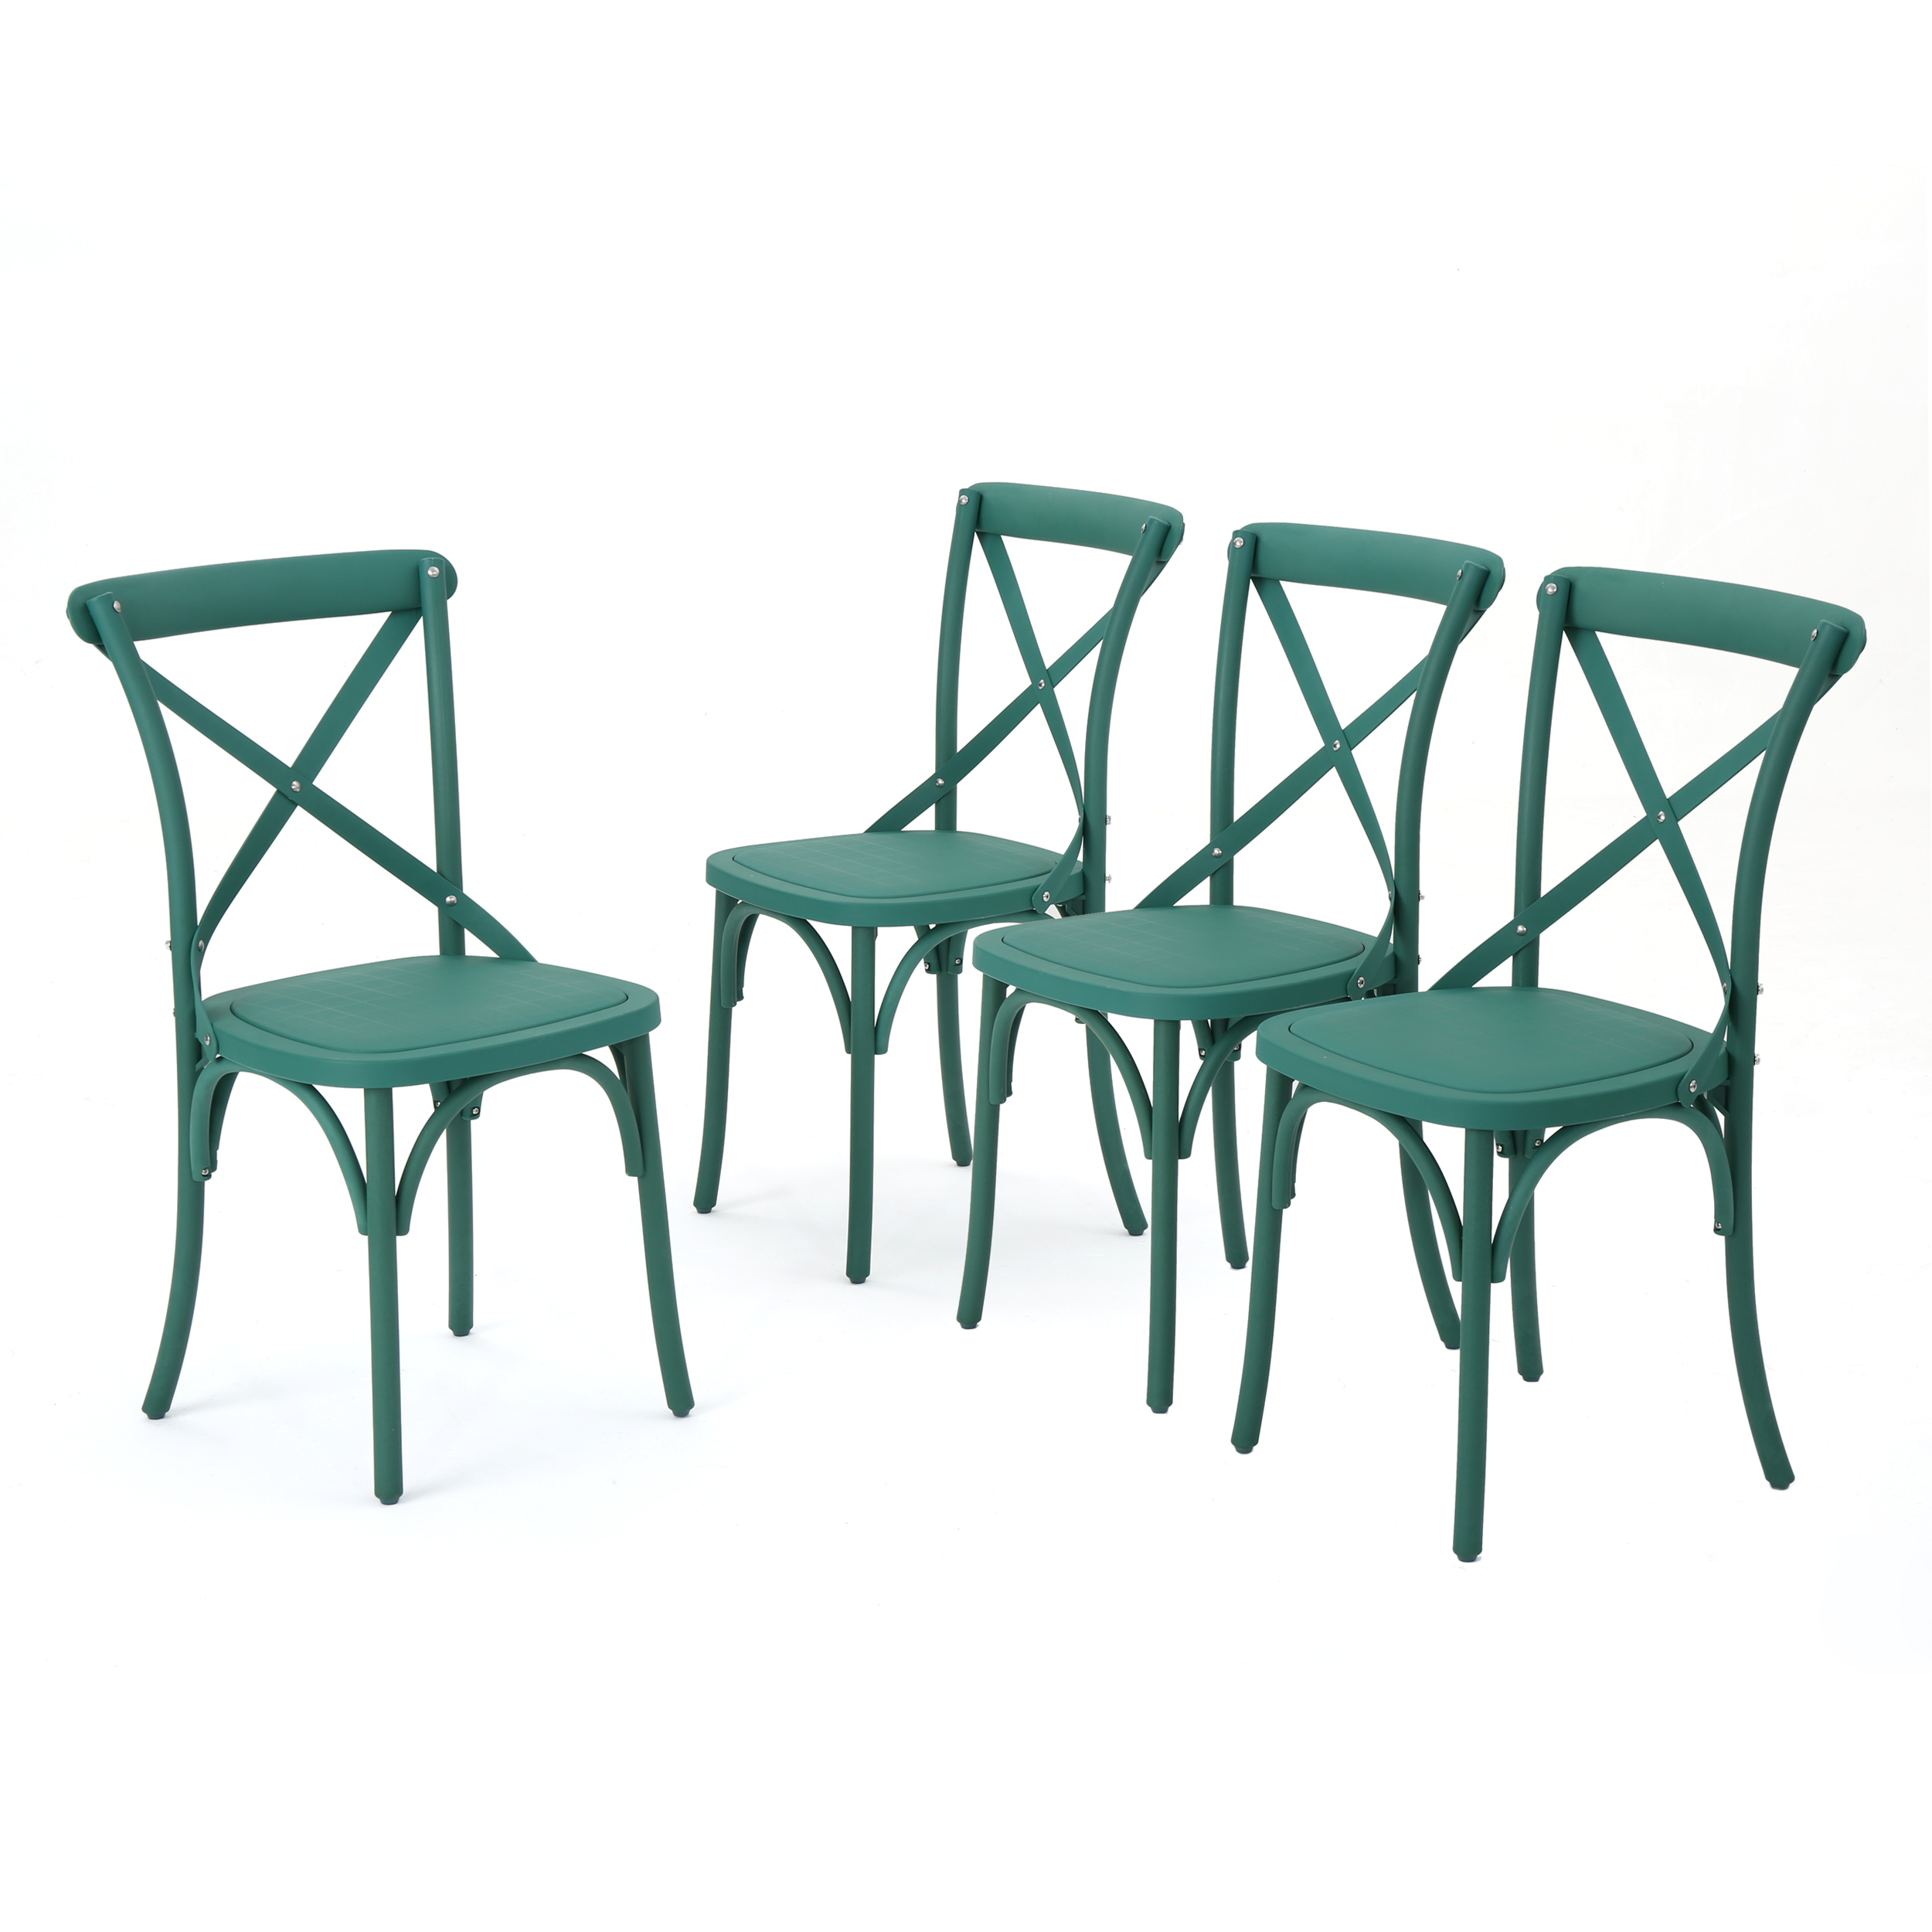 Ernie Outdoor Plastic Nylon Dining Chairs, Set of 4, Magnolia Green